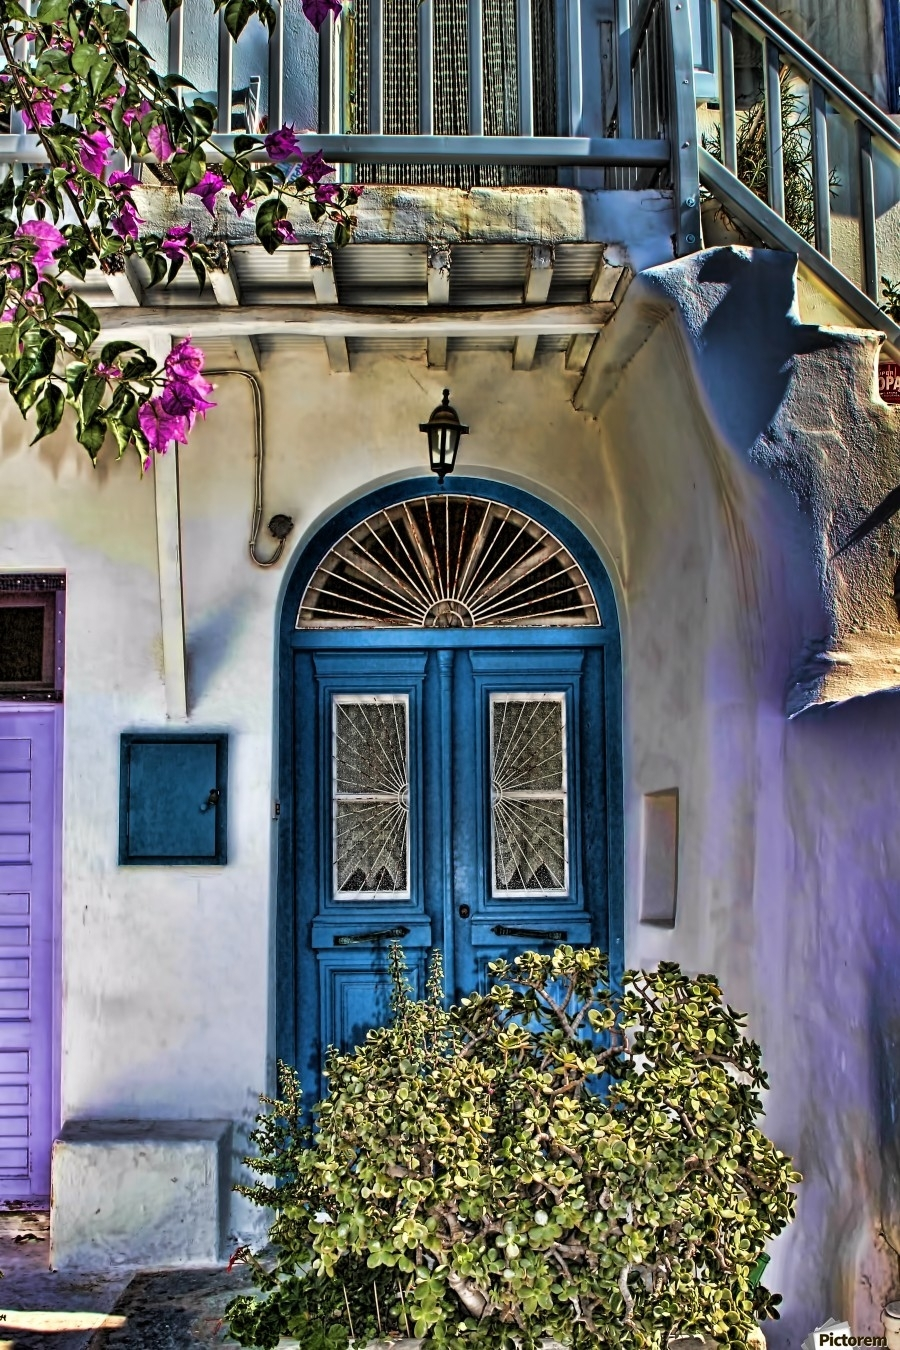 The Blue Door Santorini – Tom Prendergast Canvas Within Most Recently Released Greece Canvas Wall Art (View 15 of 15)